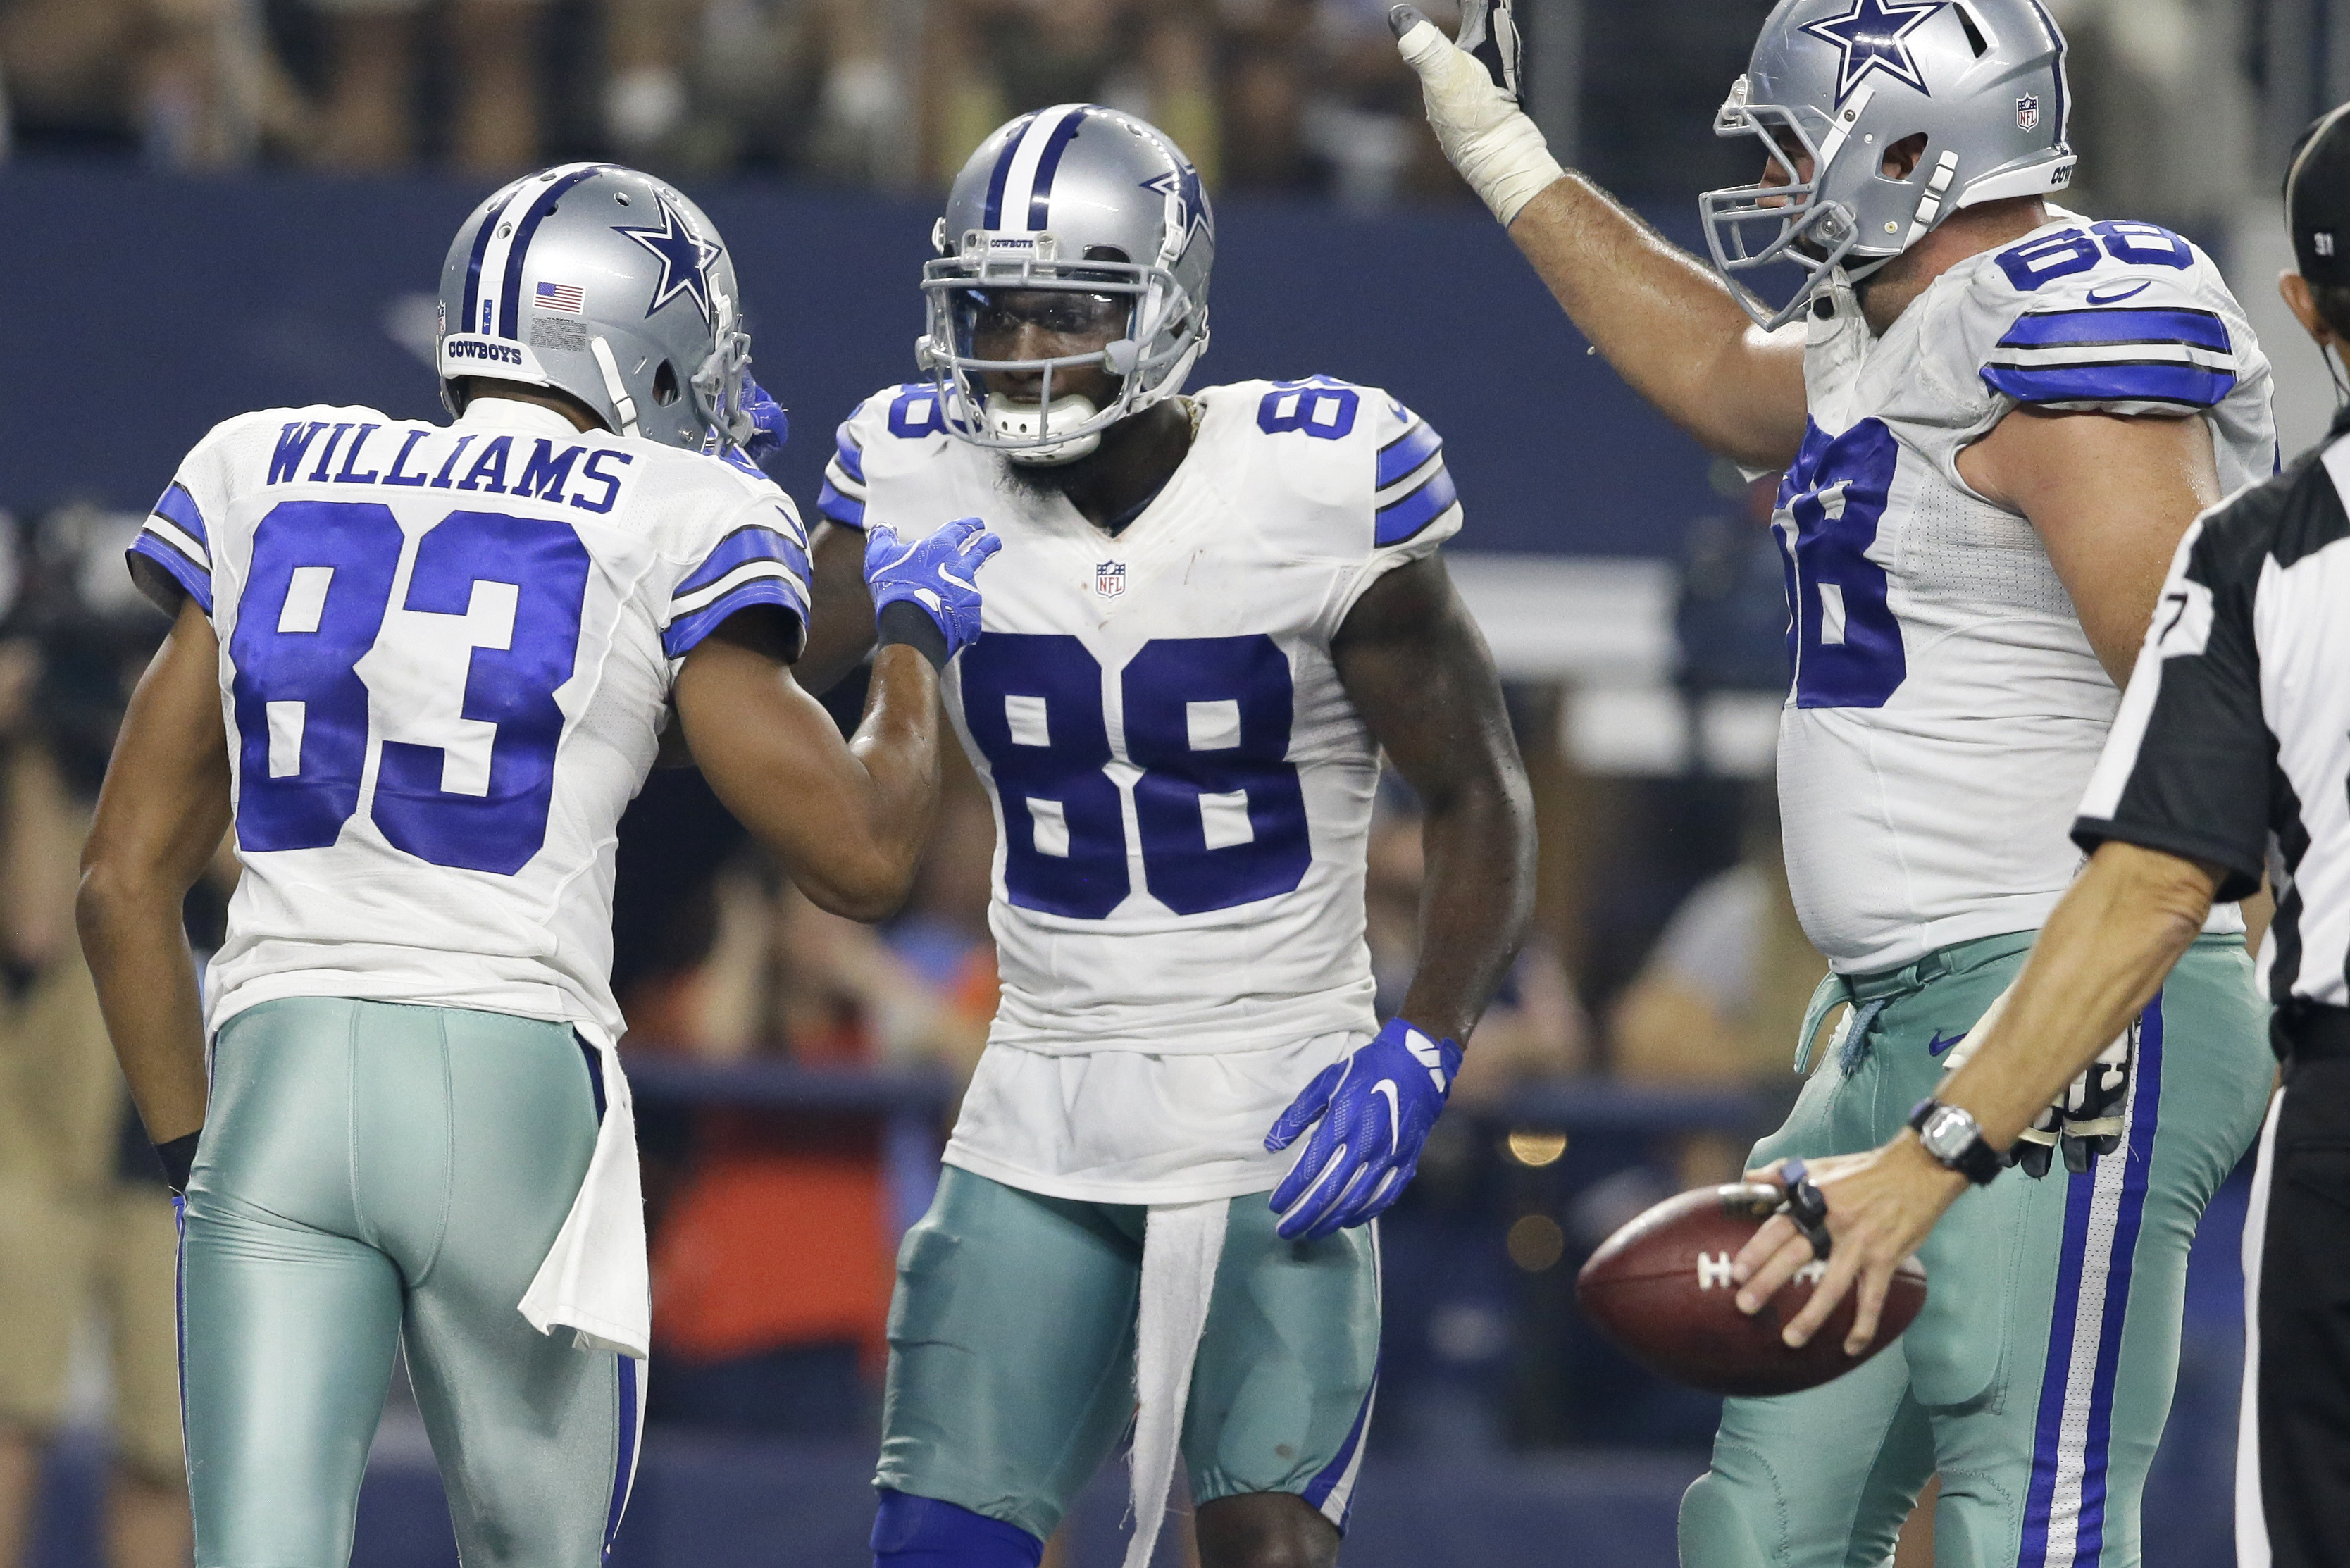 FILE - In this Sept. 25, 2016, file photo, Dallas Cowboys' Terrance Williams (83), Dez Bryant (88) and Doug Free (68) celebrate a touchdown catch by Bryant in the second half of an NFL football game against the Chicago Bears, in Arlington, Texas. Bryant s